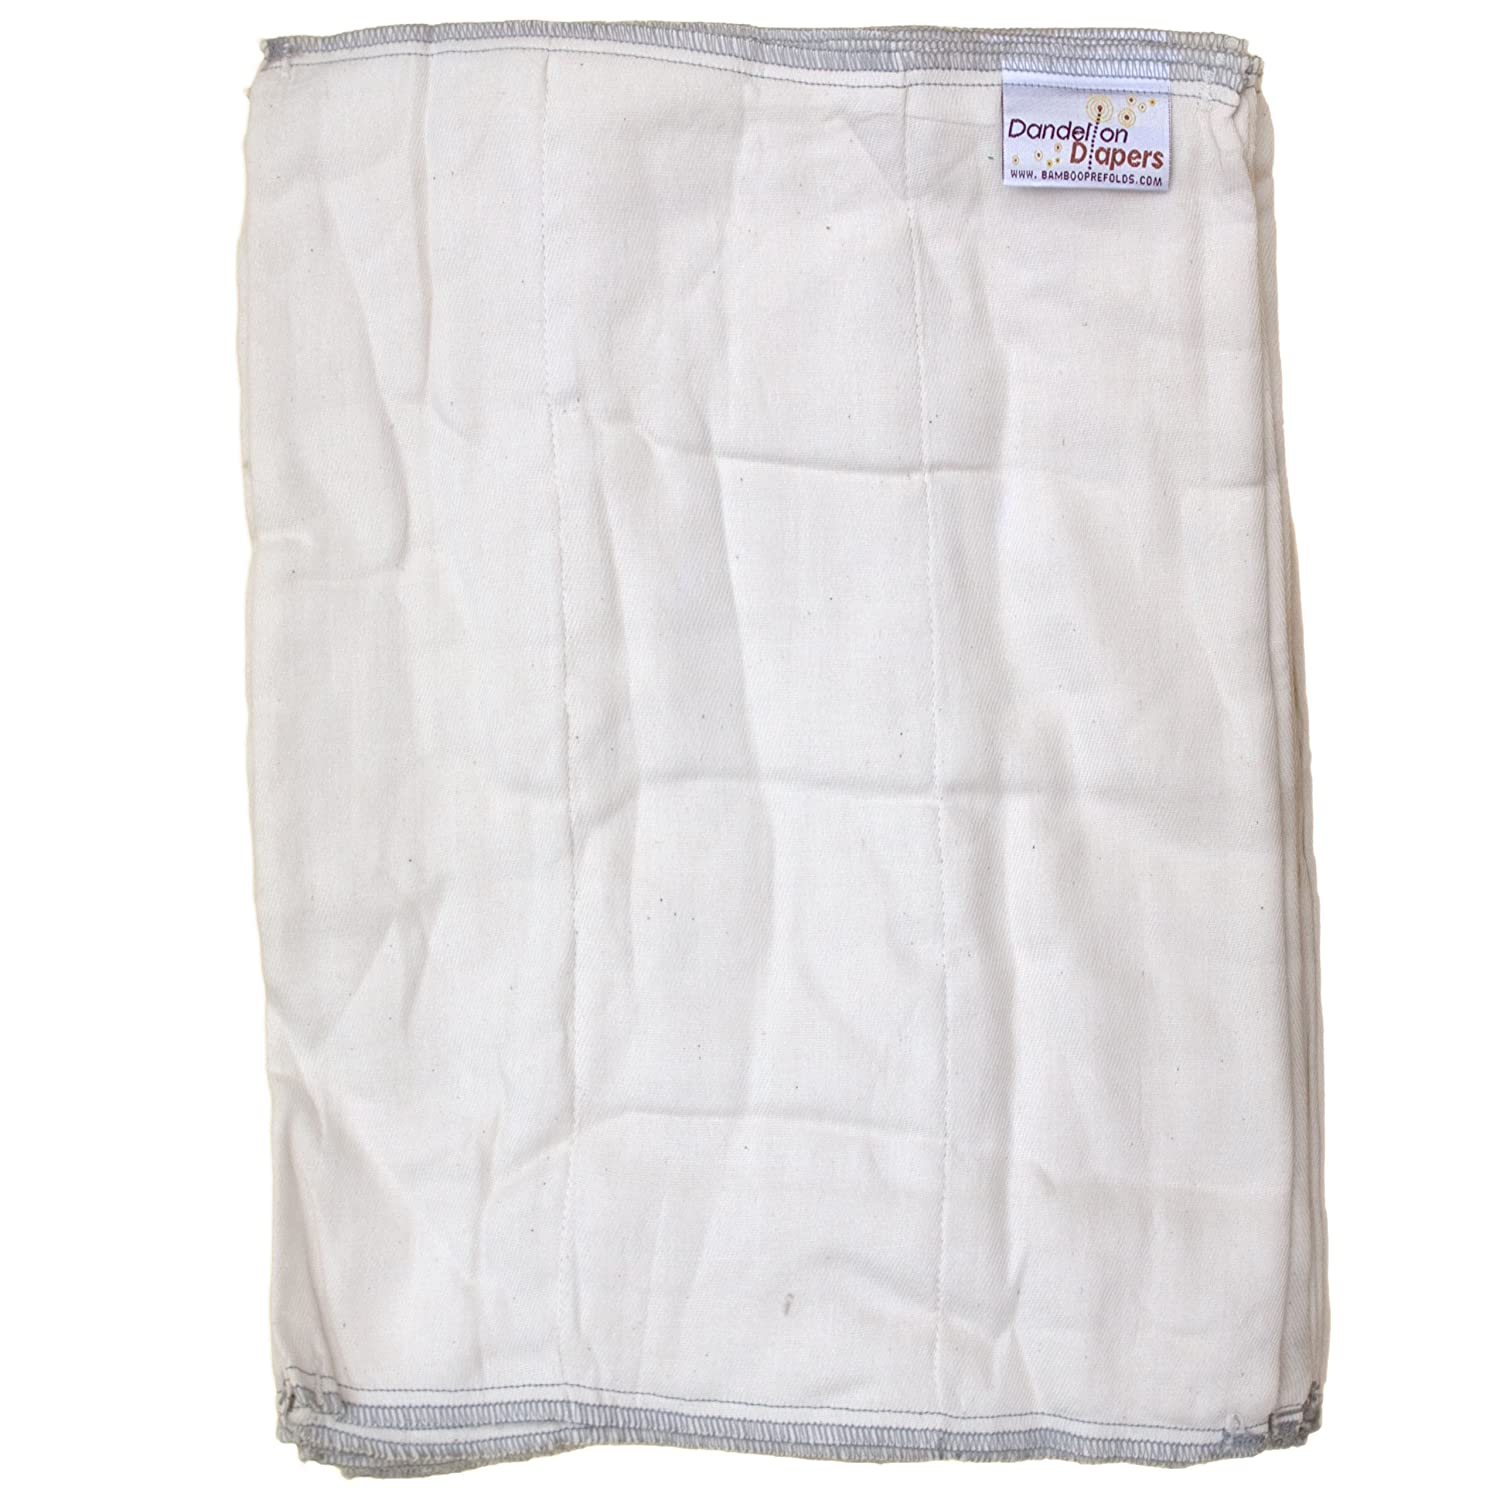 Dandelion Diapers Organic Prefolds - Bamboo Fashion and Rayon Made from Outlet ☆ Free Shipping